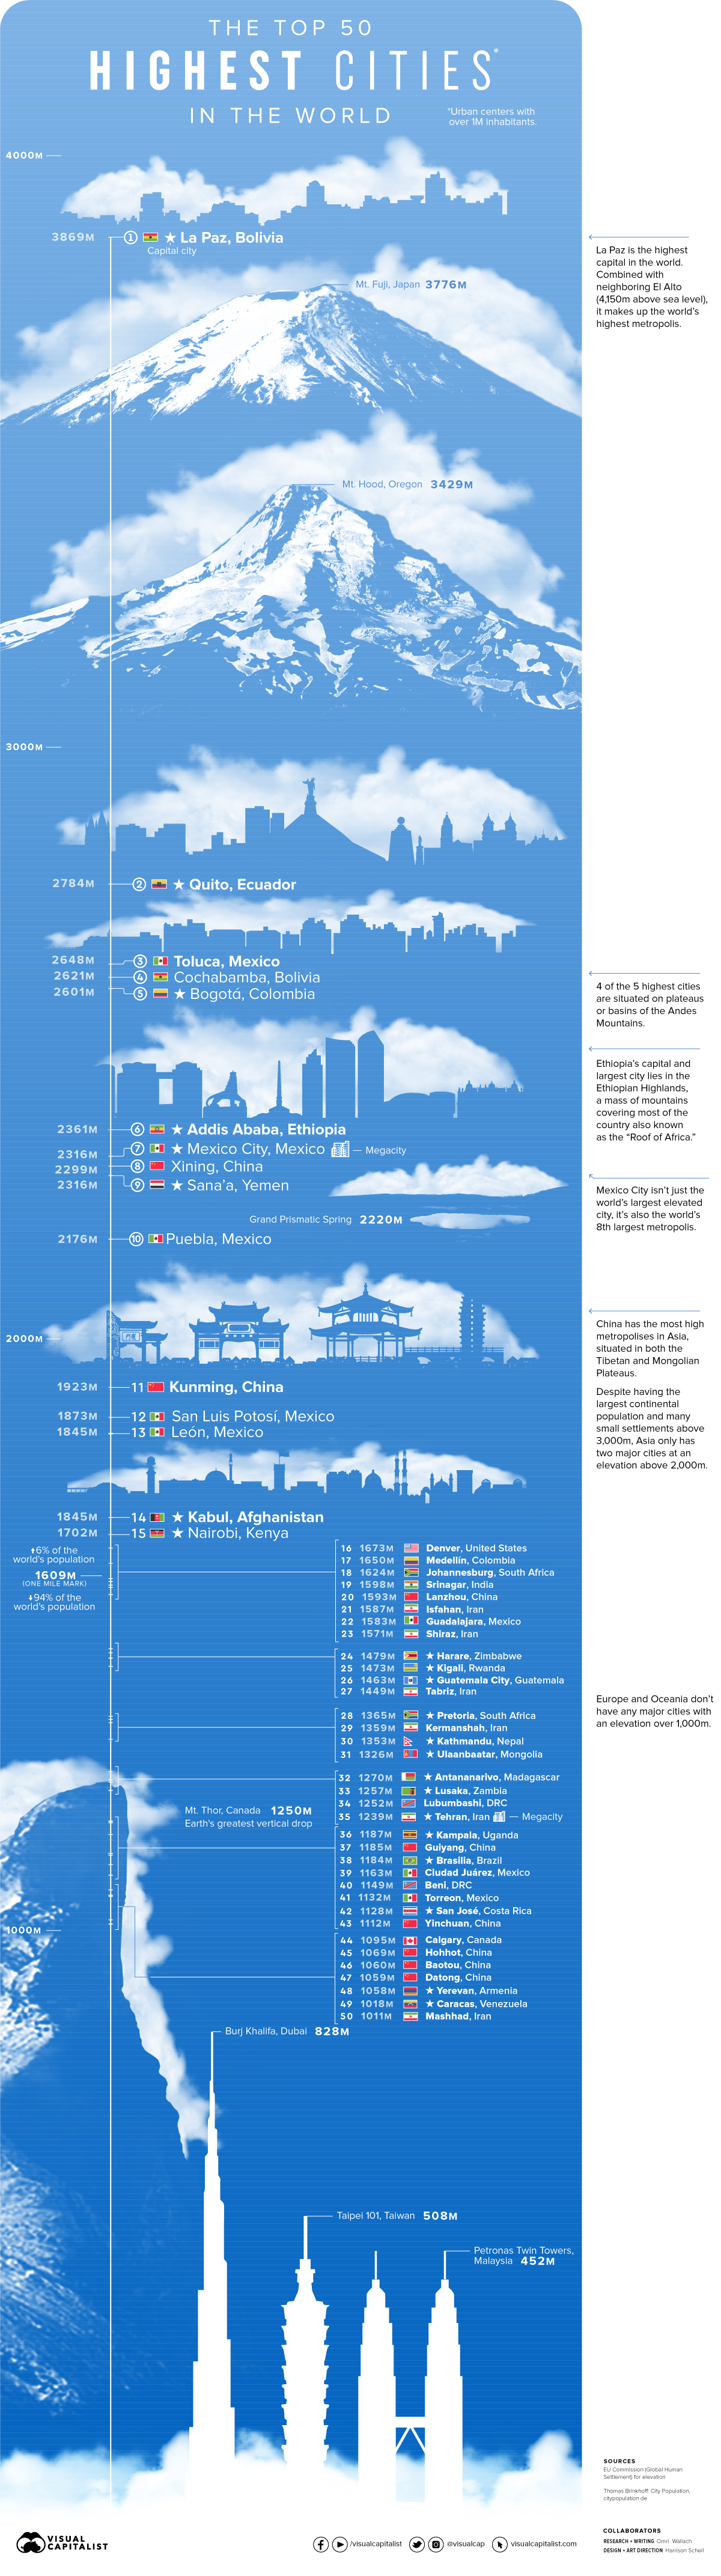 The Top 50 Highest Cities in the World